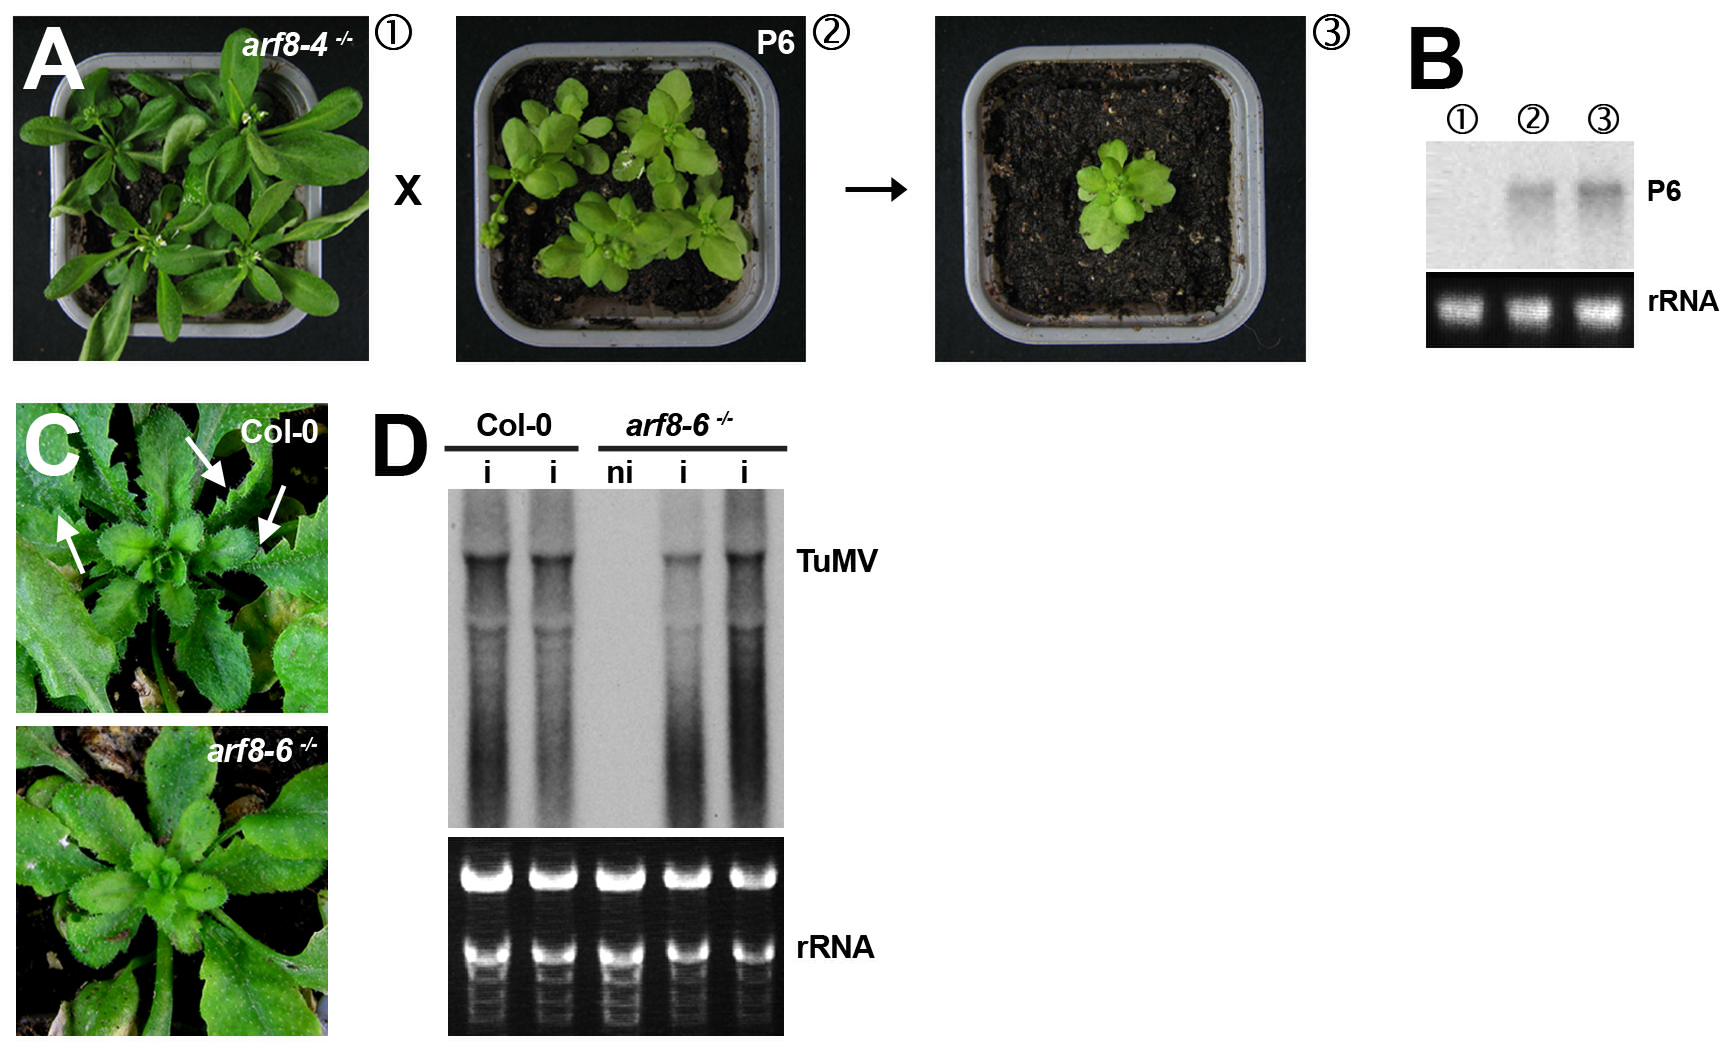 The <i>arf8</i> mutation does not alter the developmental phenotypes caused by the P6 VSR of <i>Cauliflower mosaic virus</i> but strongly reduces those incurred by<i>Turnip mosaic virus</i> infection.